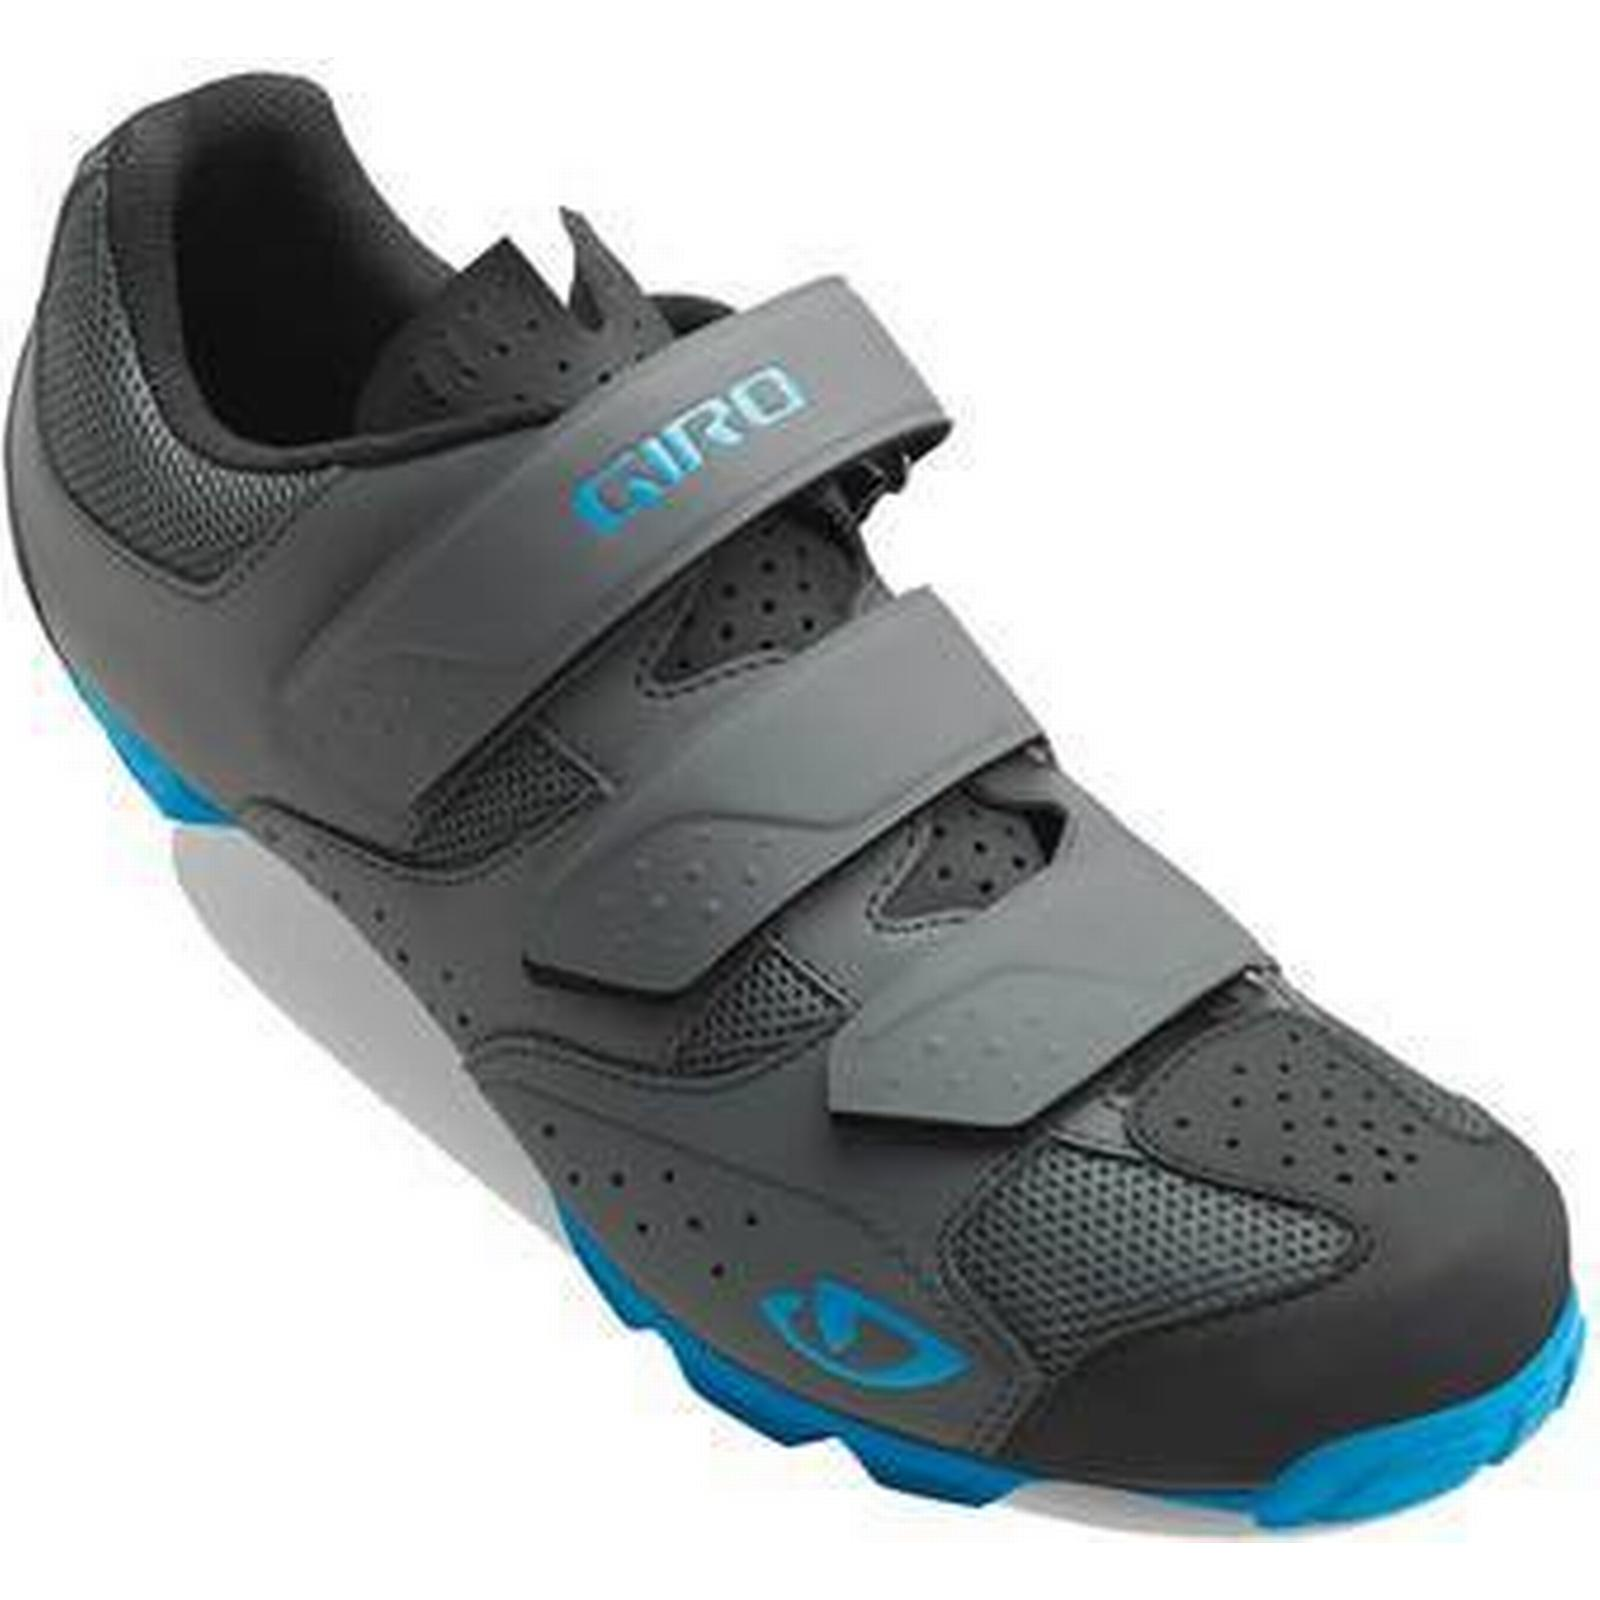 Giro Carbide Shoes R II MTB Cycling Shoes Carbide | Grey/Blue - 46 b51ce7